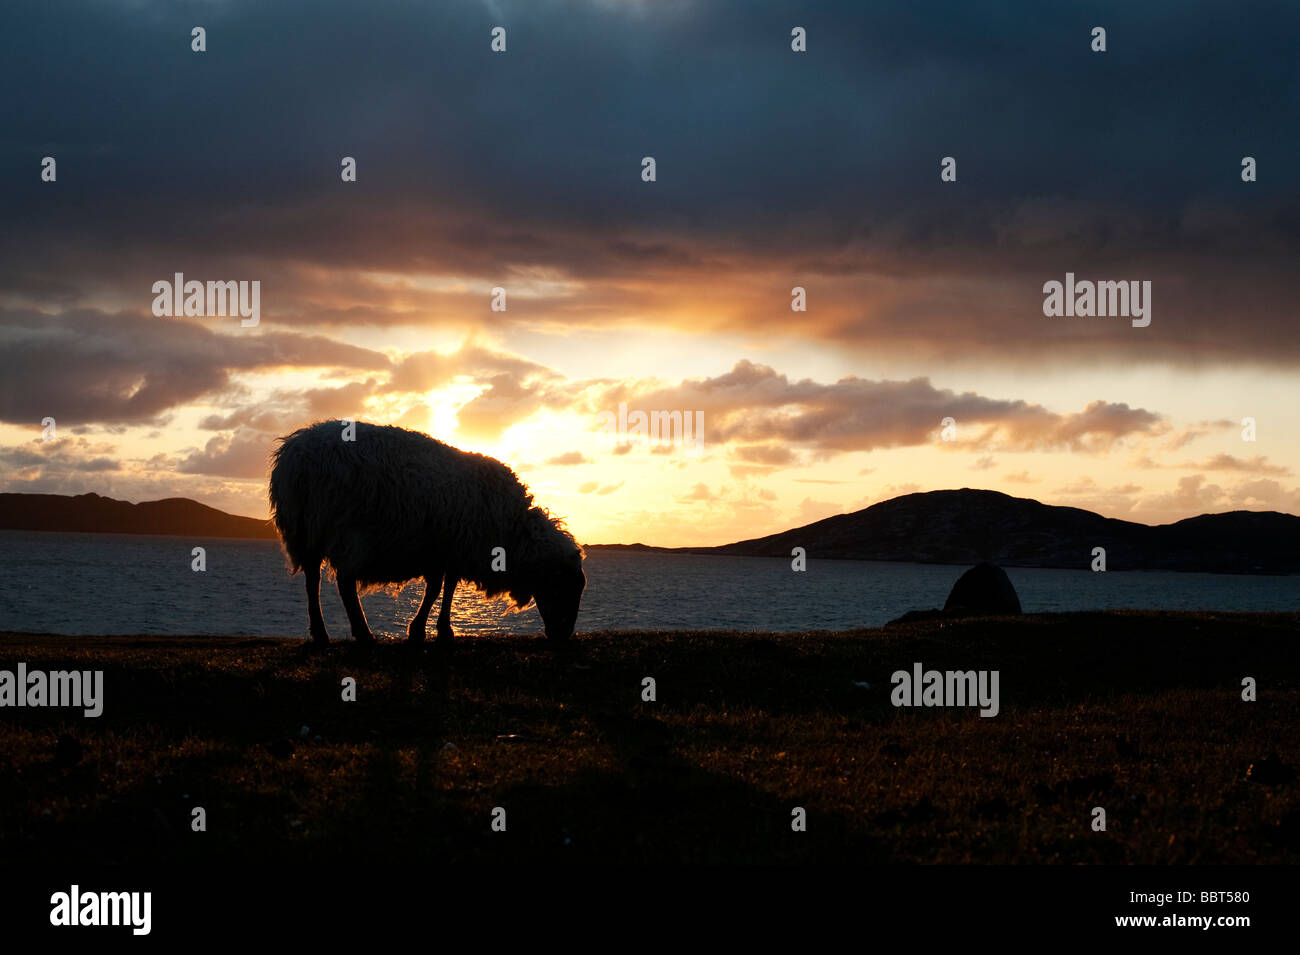 Sheep grazing silhouette against a sunset over Sound of Taransay , Isle of Harris, Outer Hebrides, Scotland - Stock Image